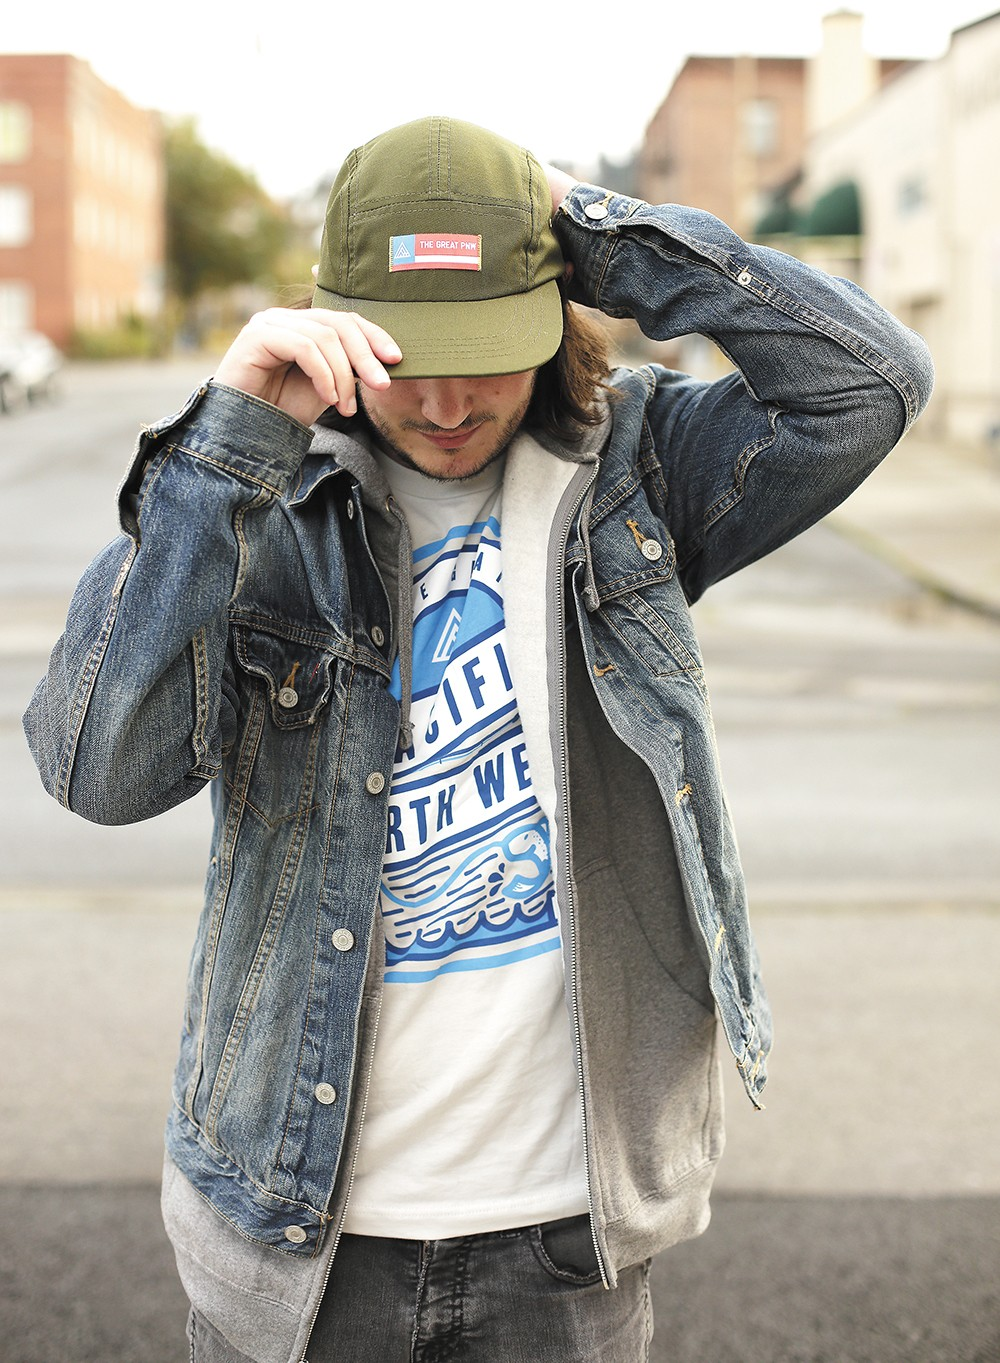 People stop Joel Barbour, the Great PNW founder, all the time wondering where he got his hat or T-shirt. - YOUNG KWAK